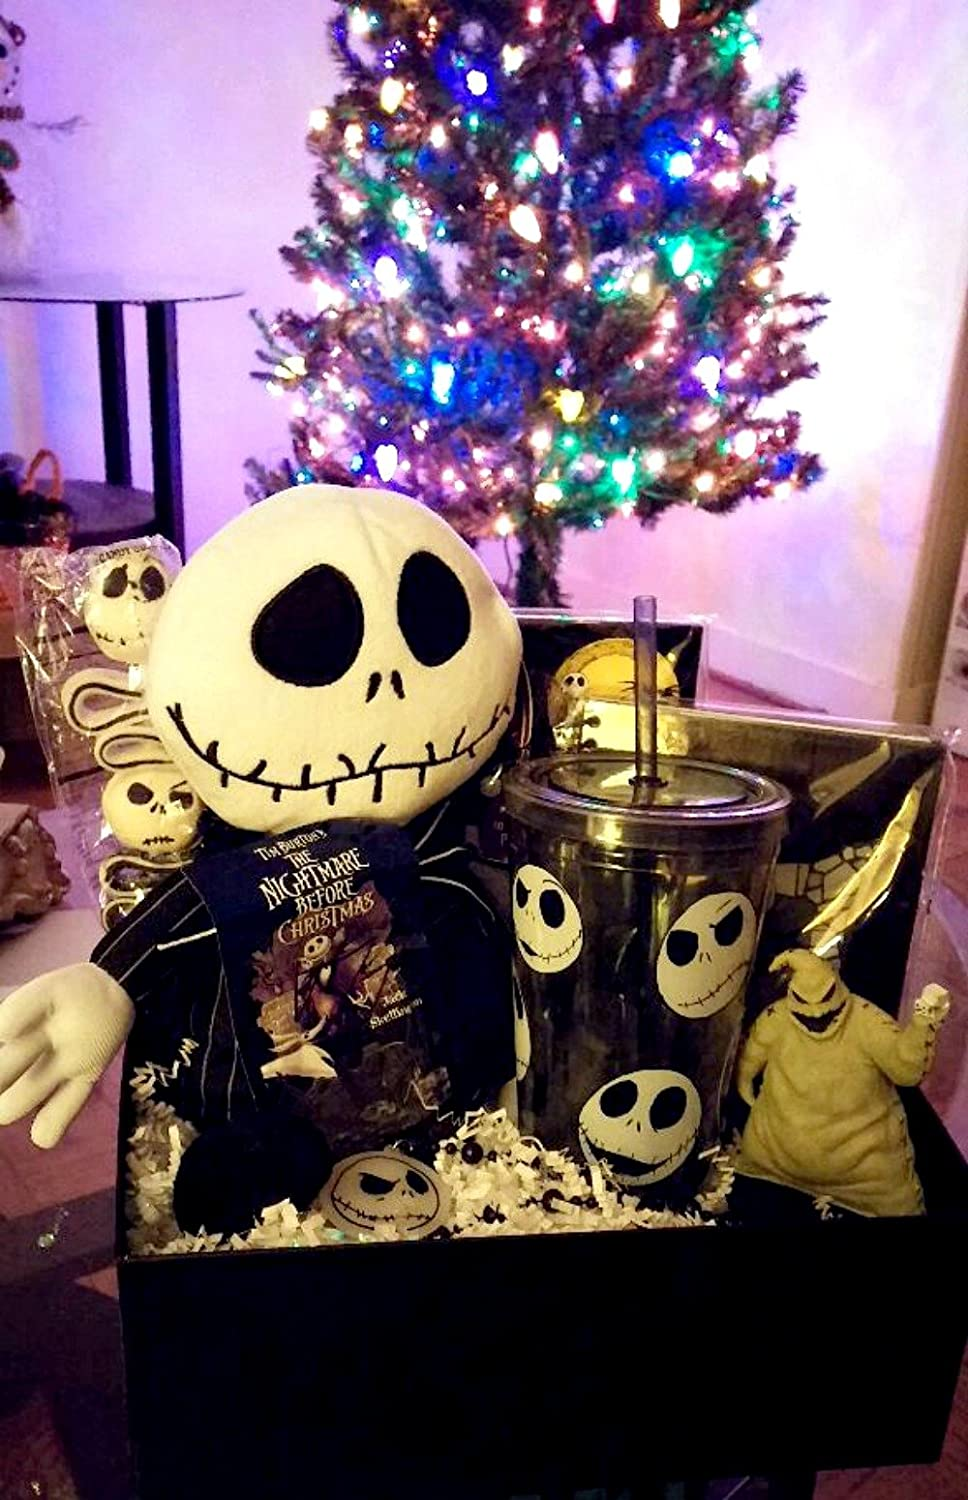 nightmare before christmas gift ideas - Rainforest Islands Ferry